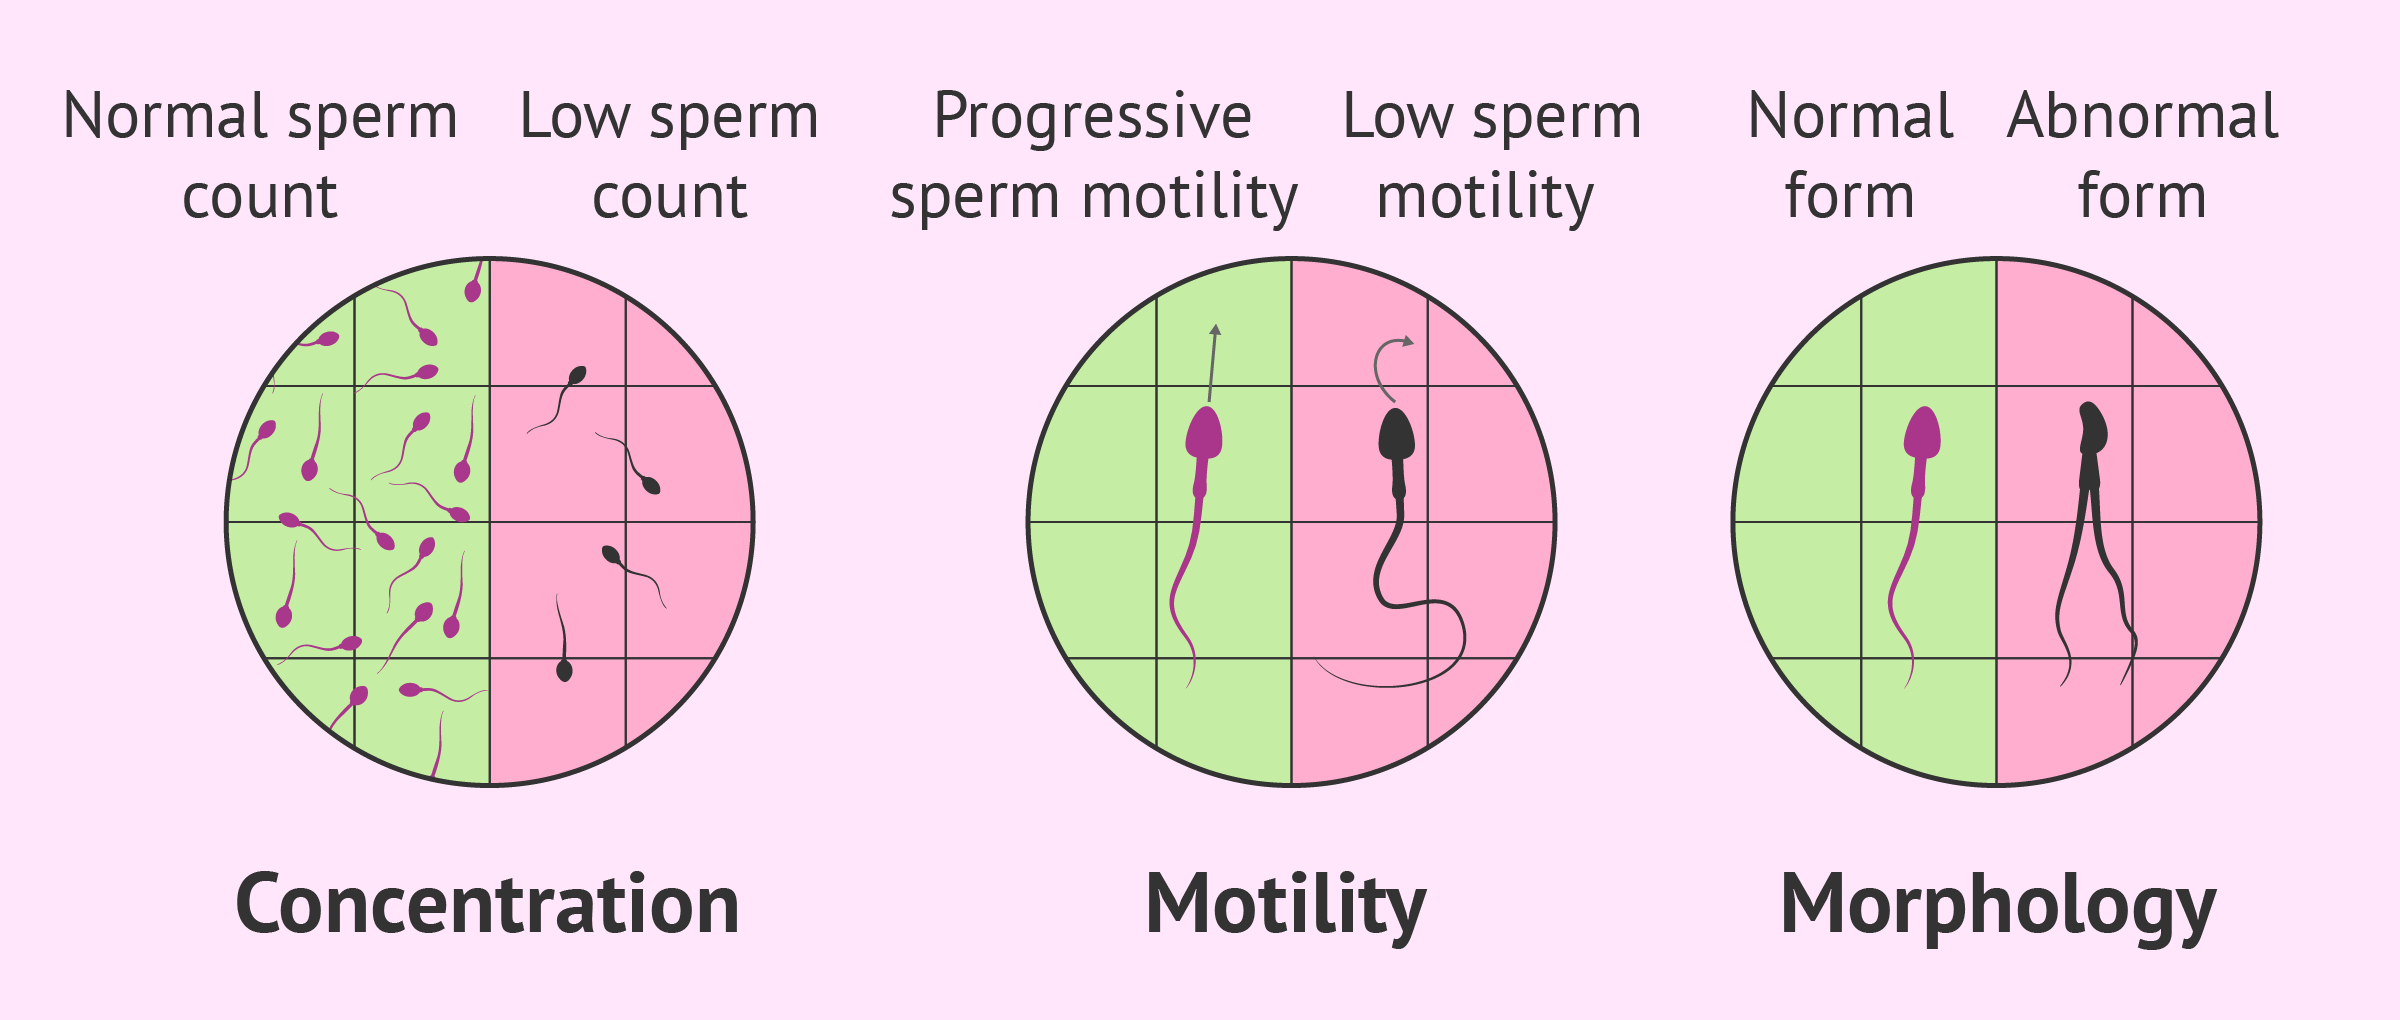 Sperm Abnormalities